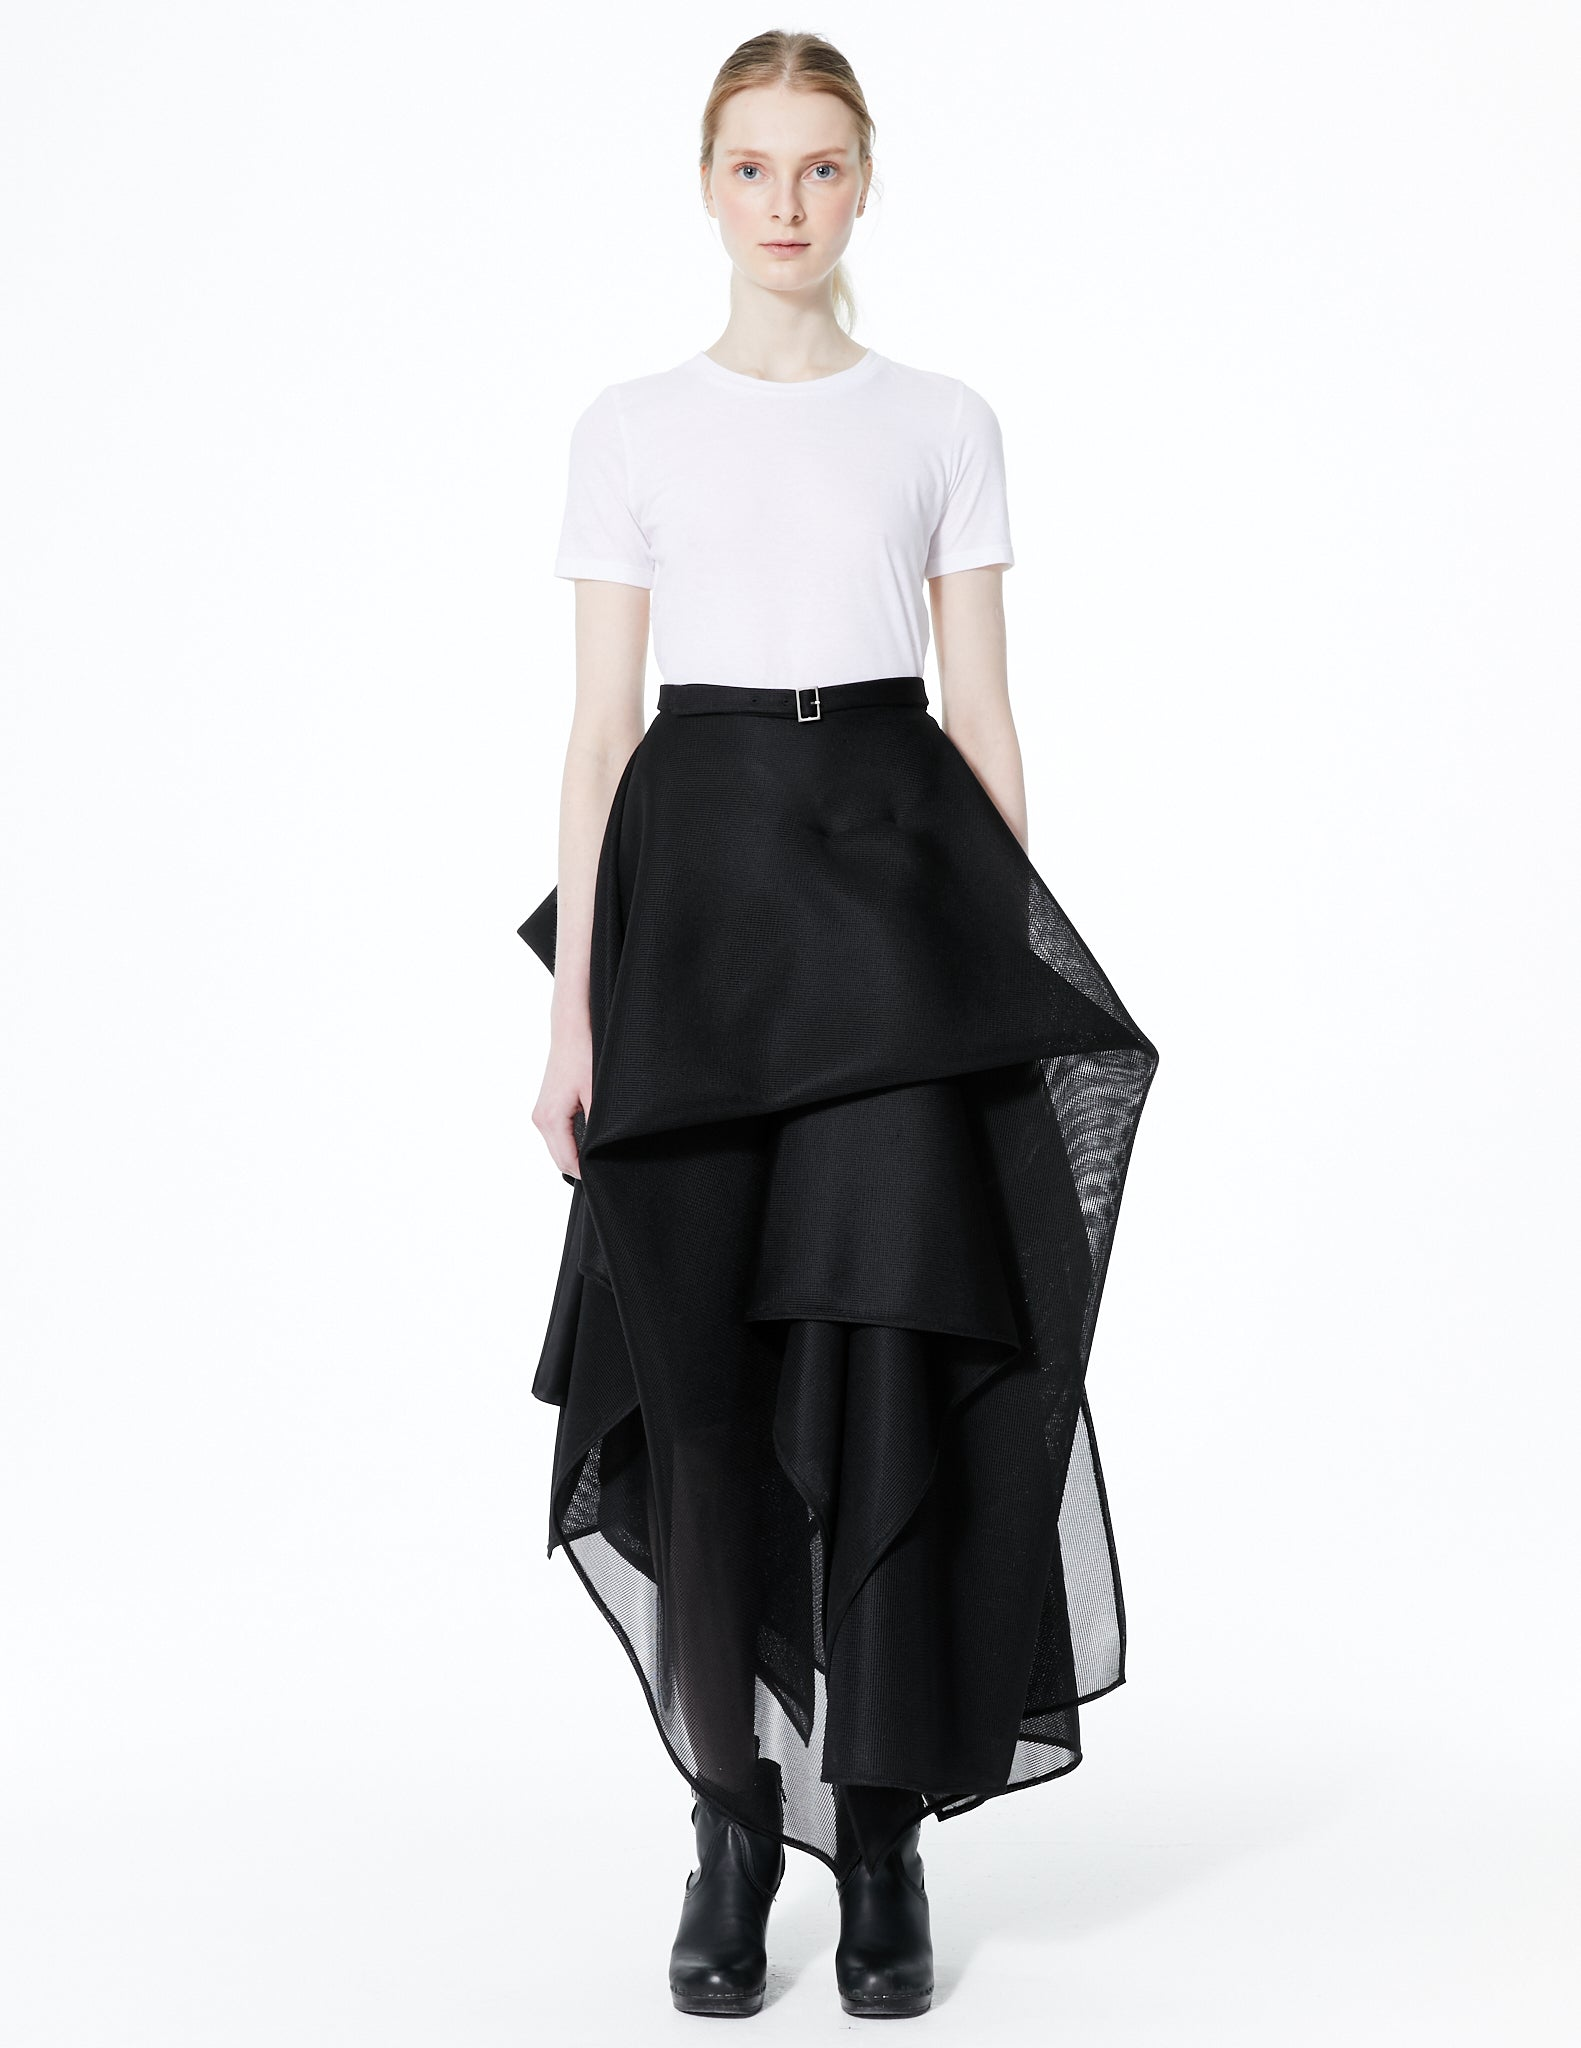 extravagantly draped mesh skirt with waistband and zipper